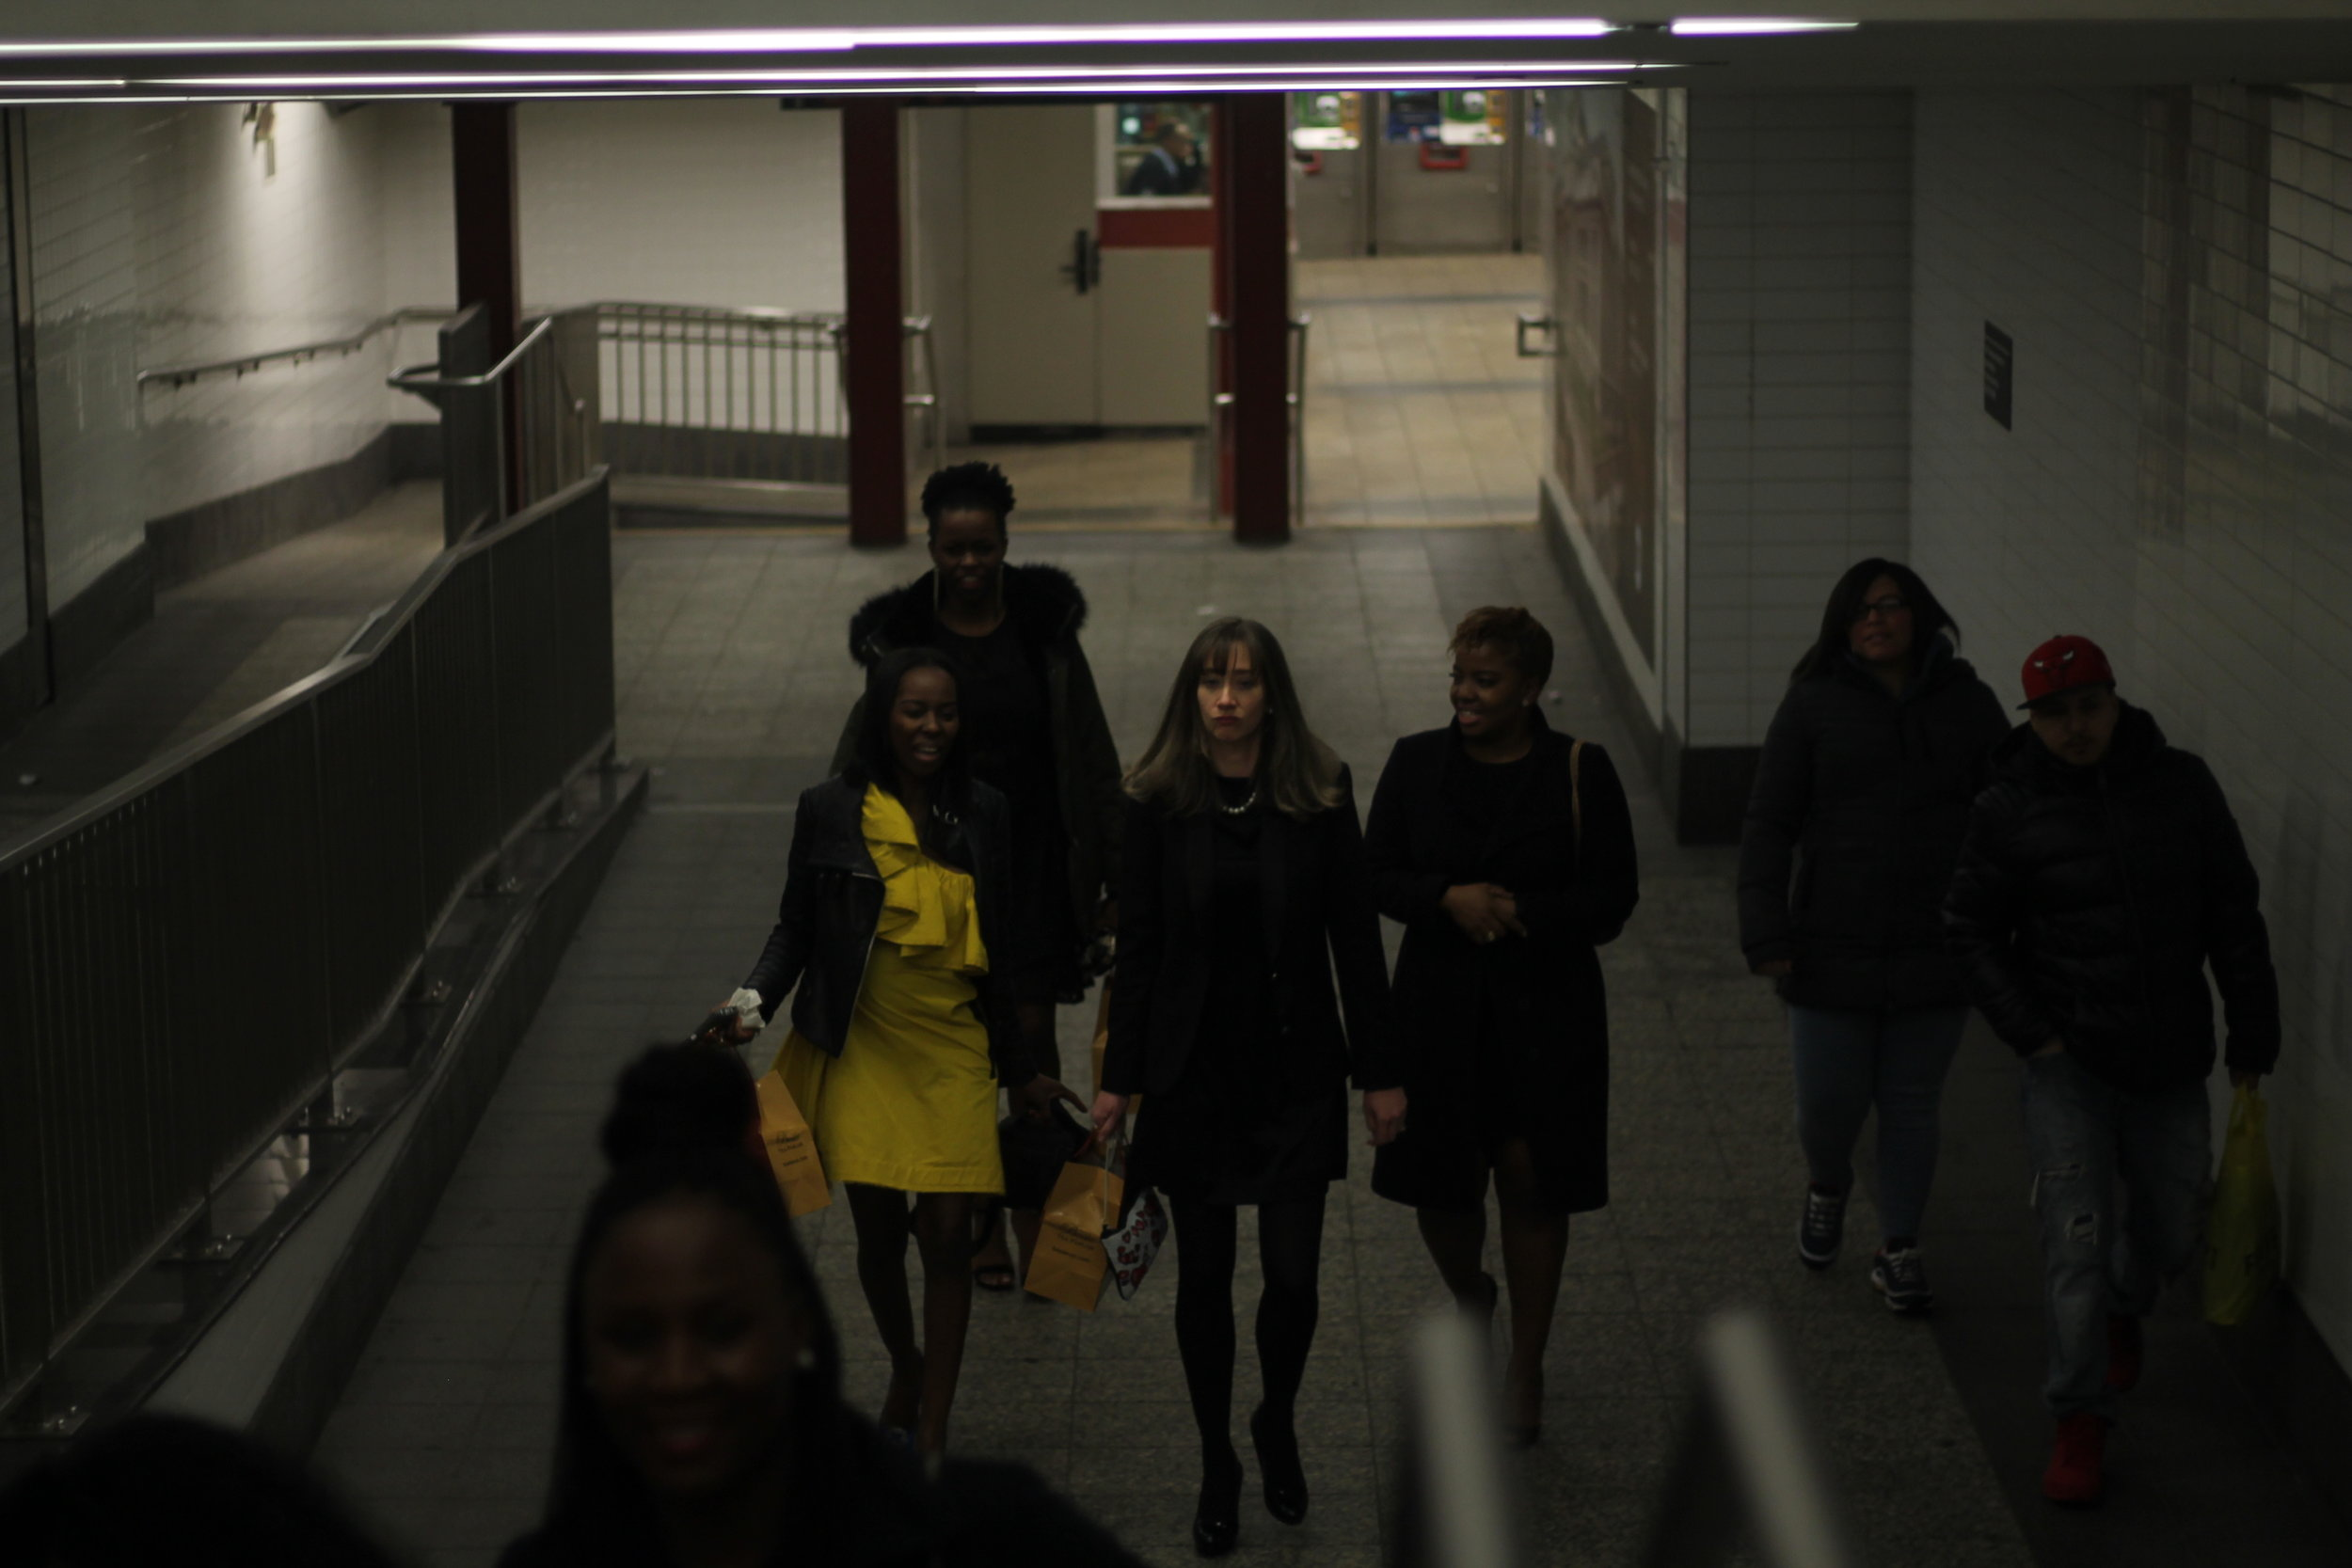 Papped exiting the subway!